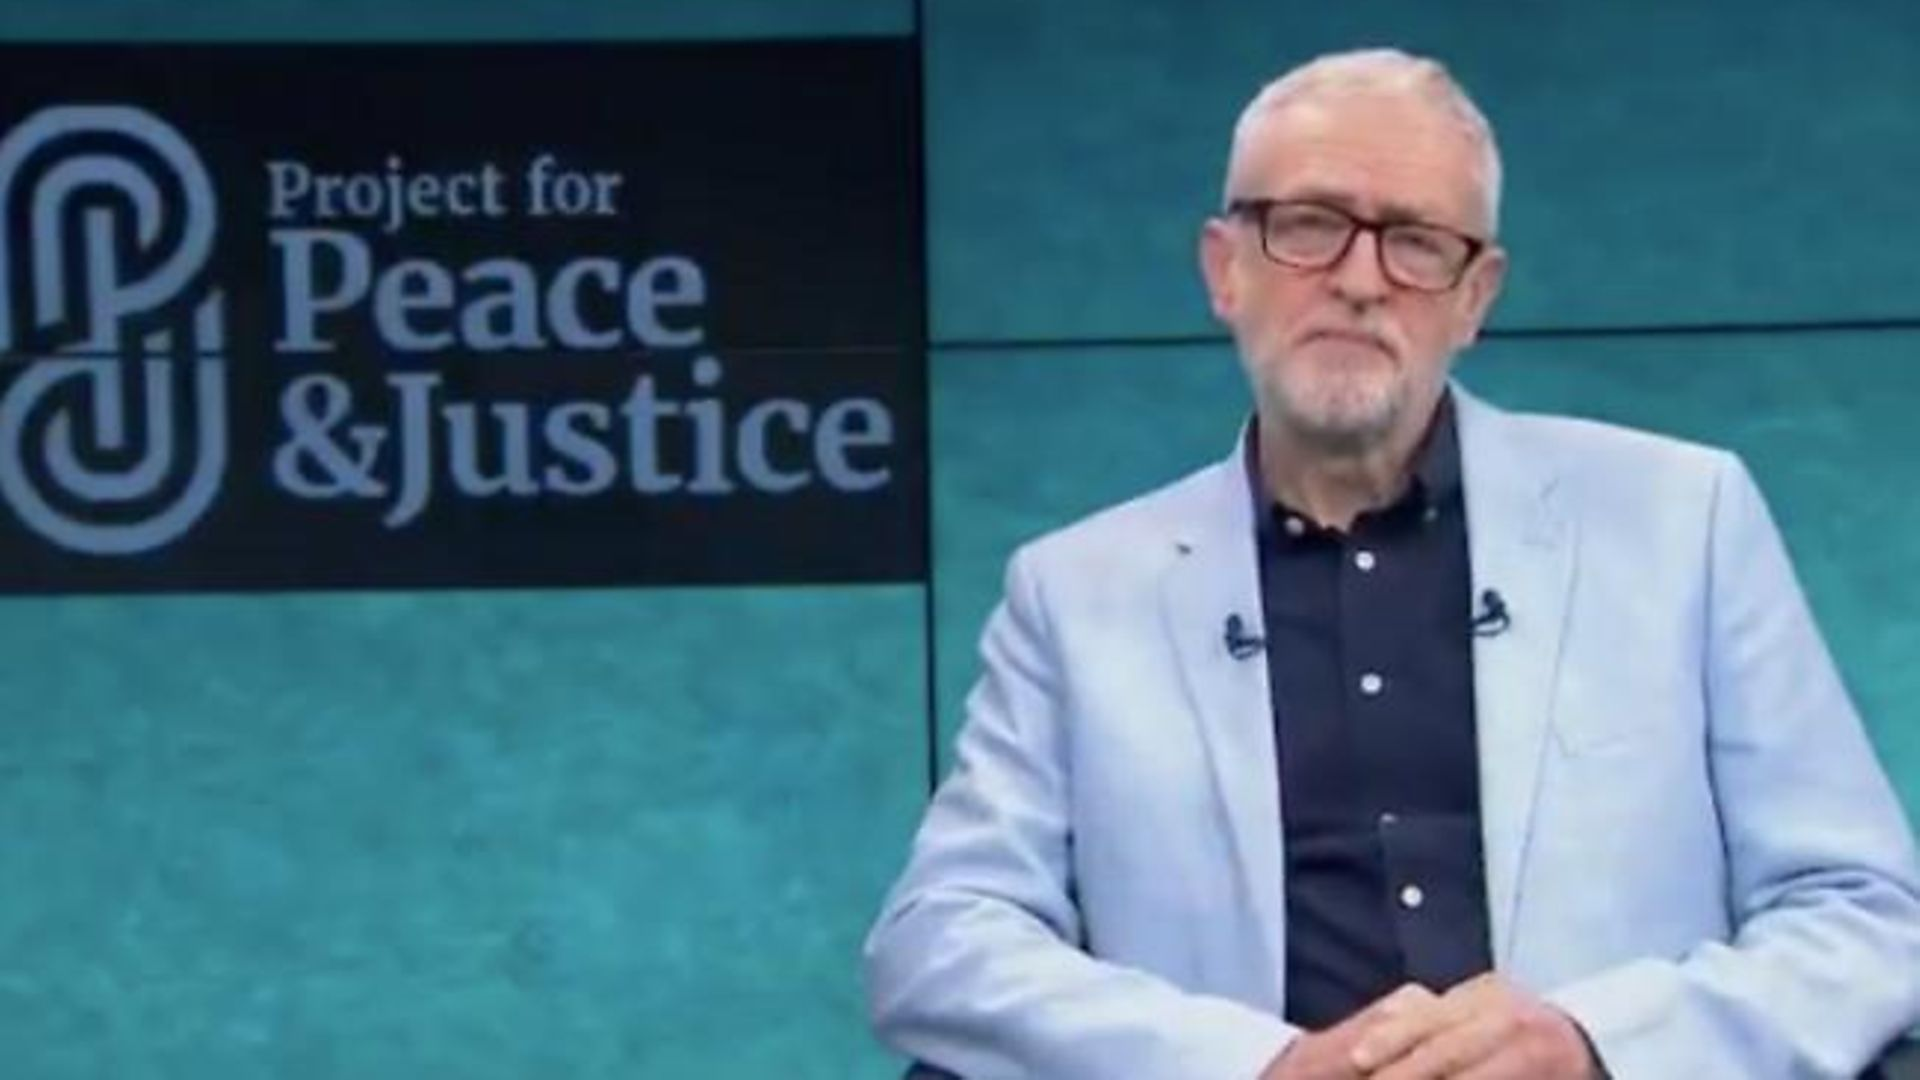 Jeremy Corbyn announces his new peace project - Credit: Twitter